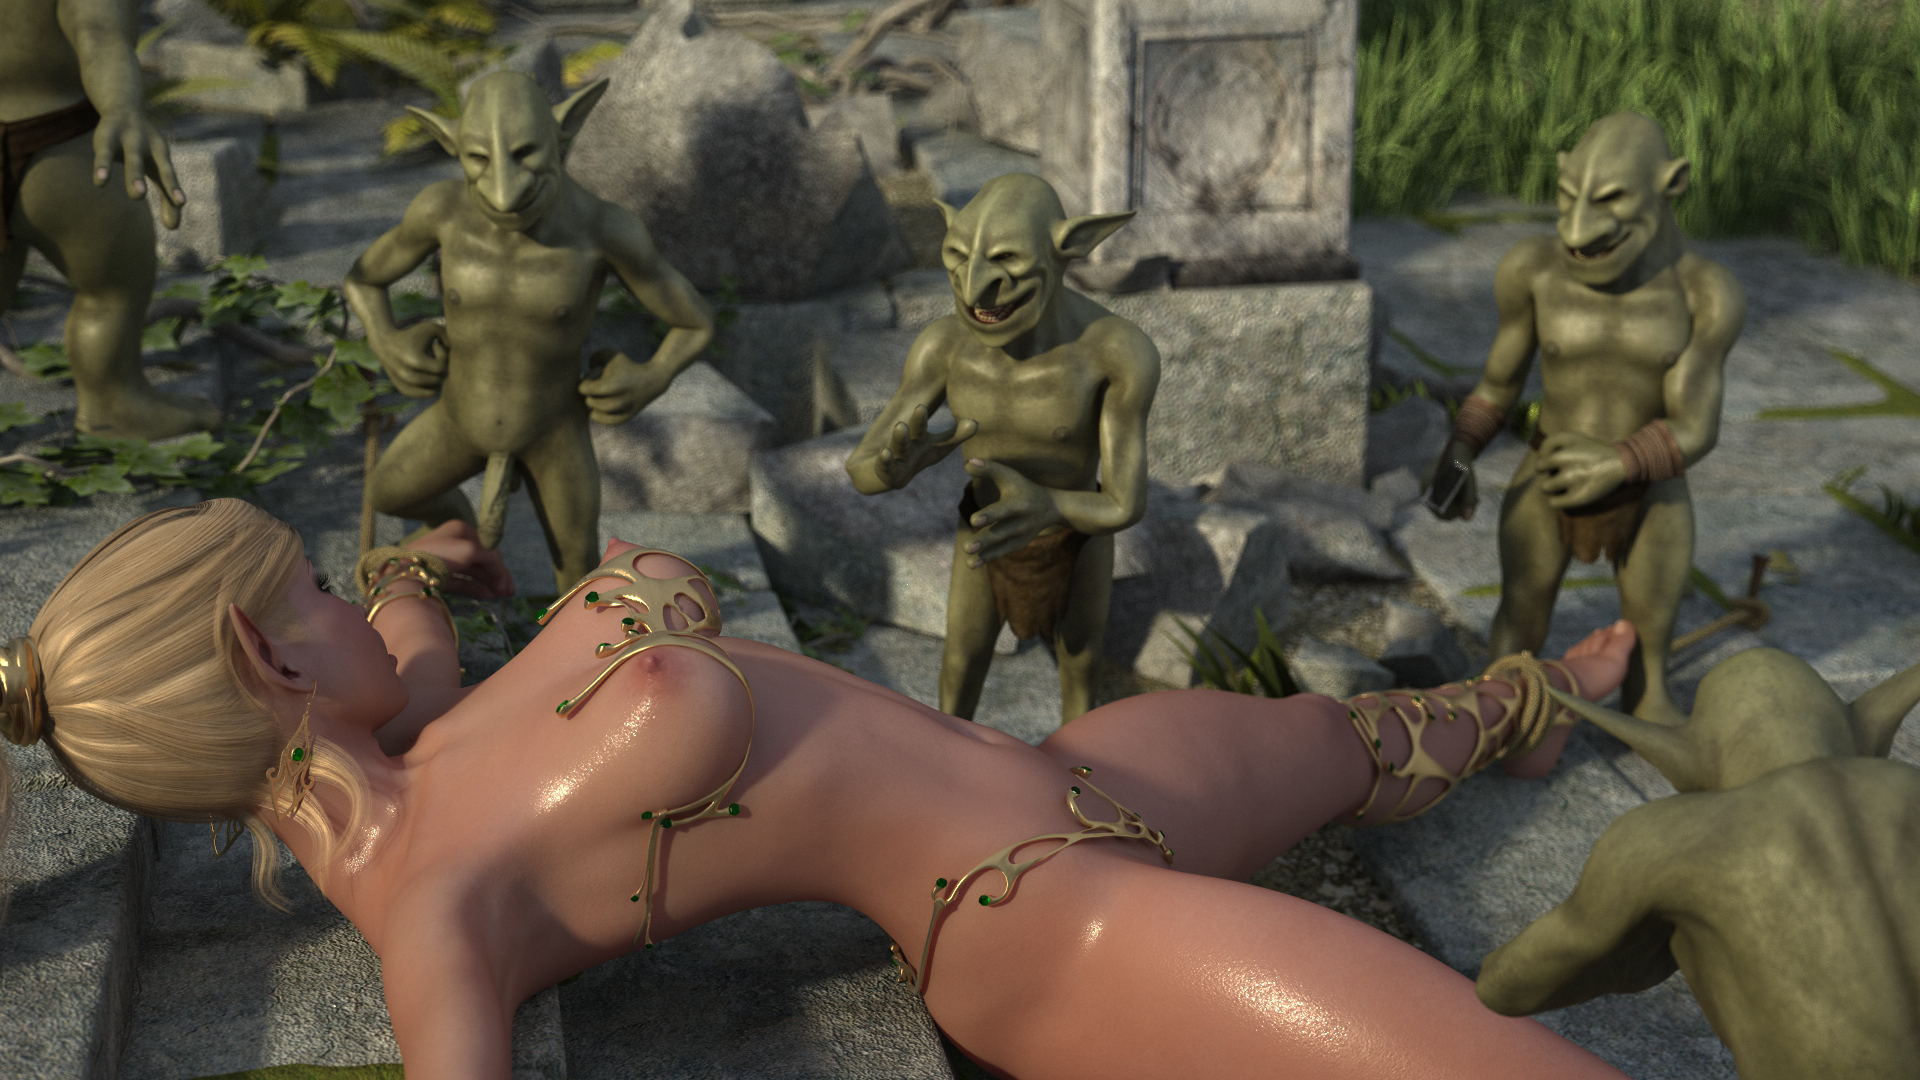 Gnomes gang bang orc exploited images